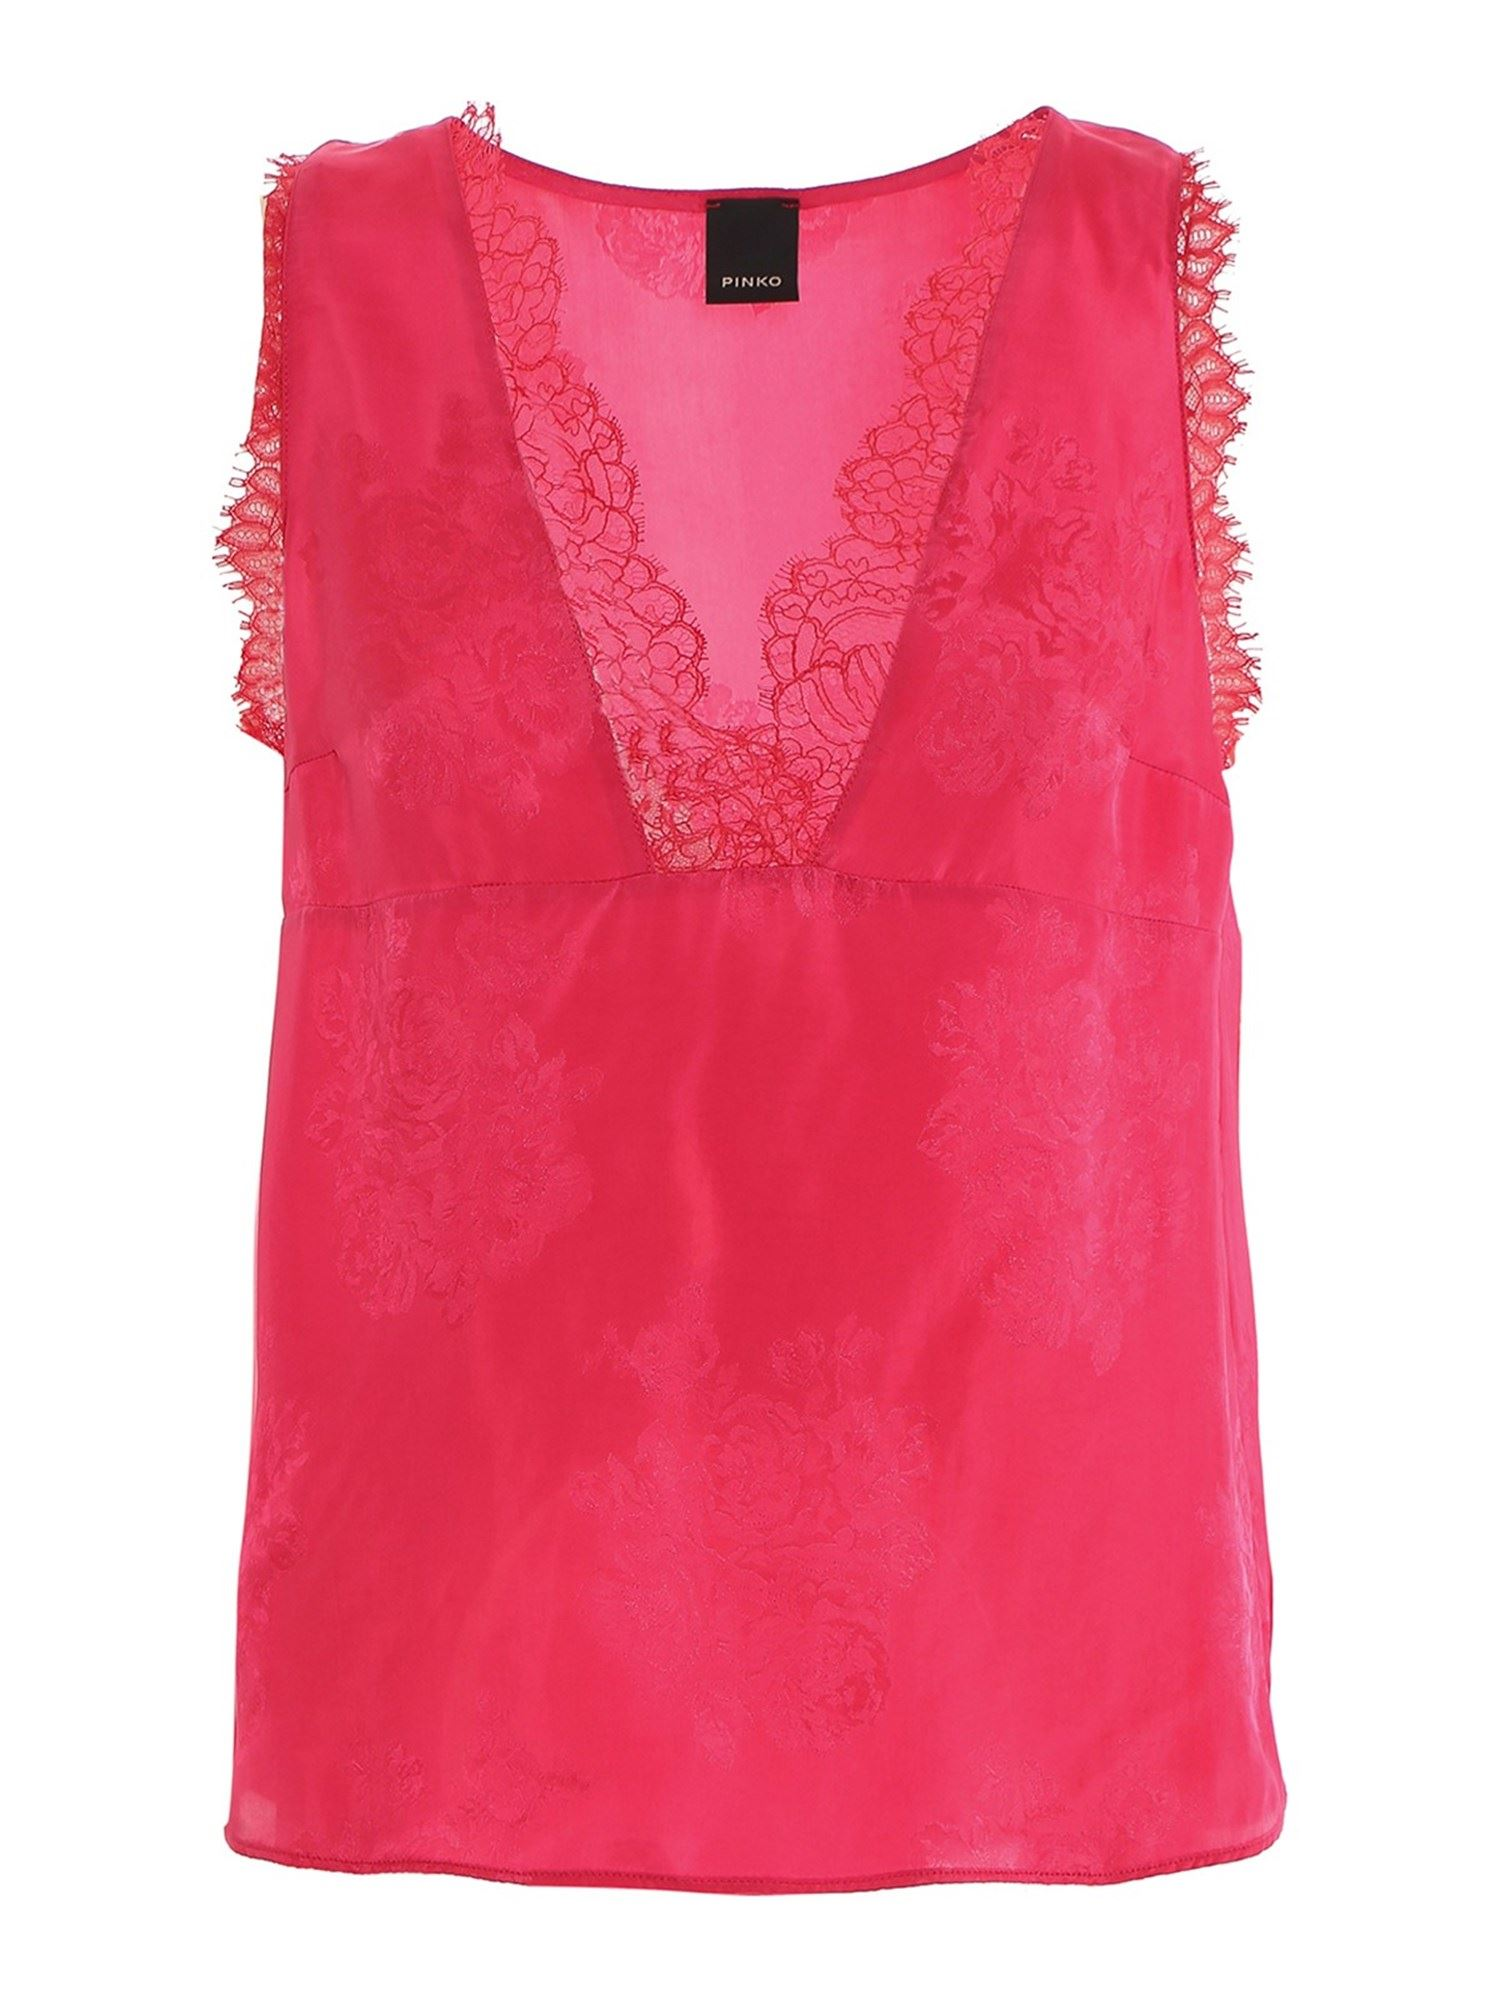 Pinko PINKO ESAGERATO TOP IN PINK